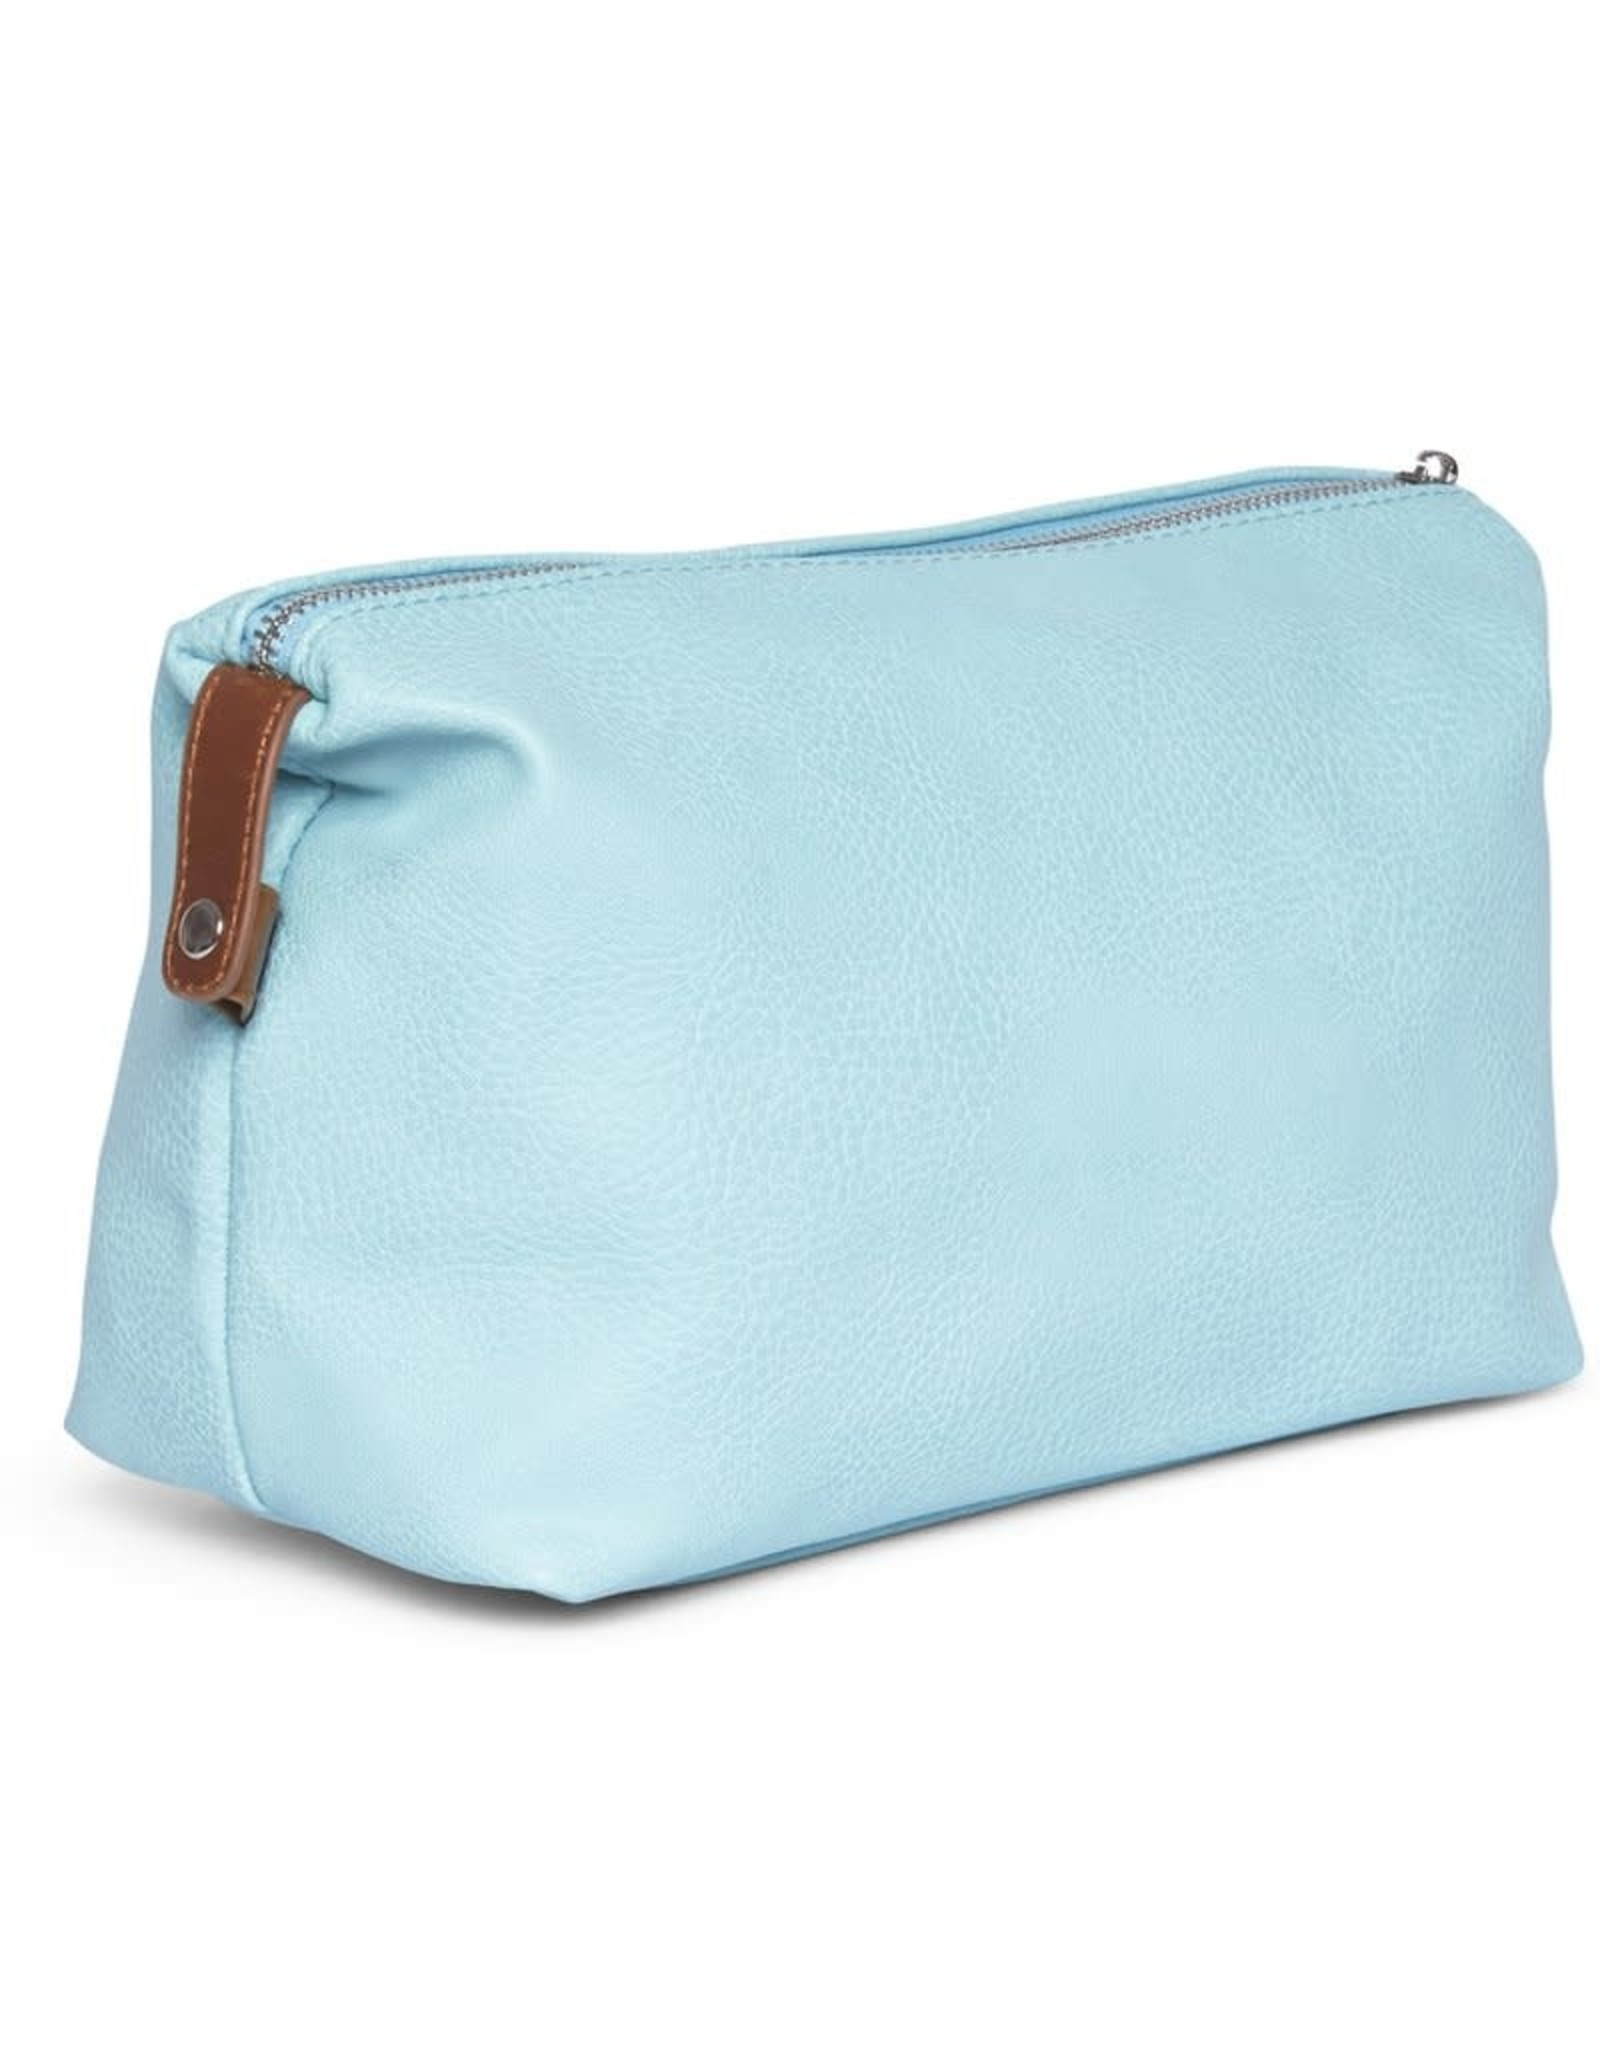 Brouk & Co Croft Dopp Kit Aqua